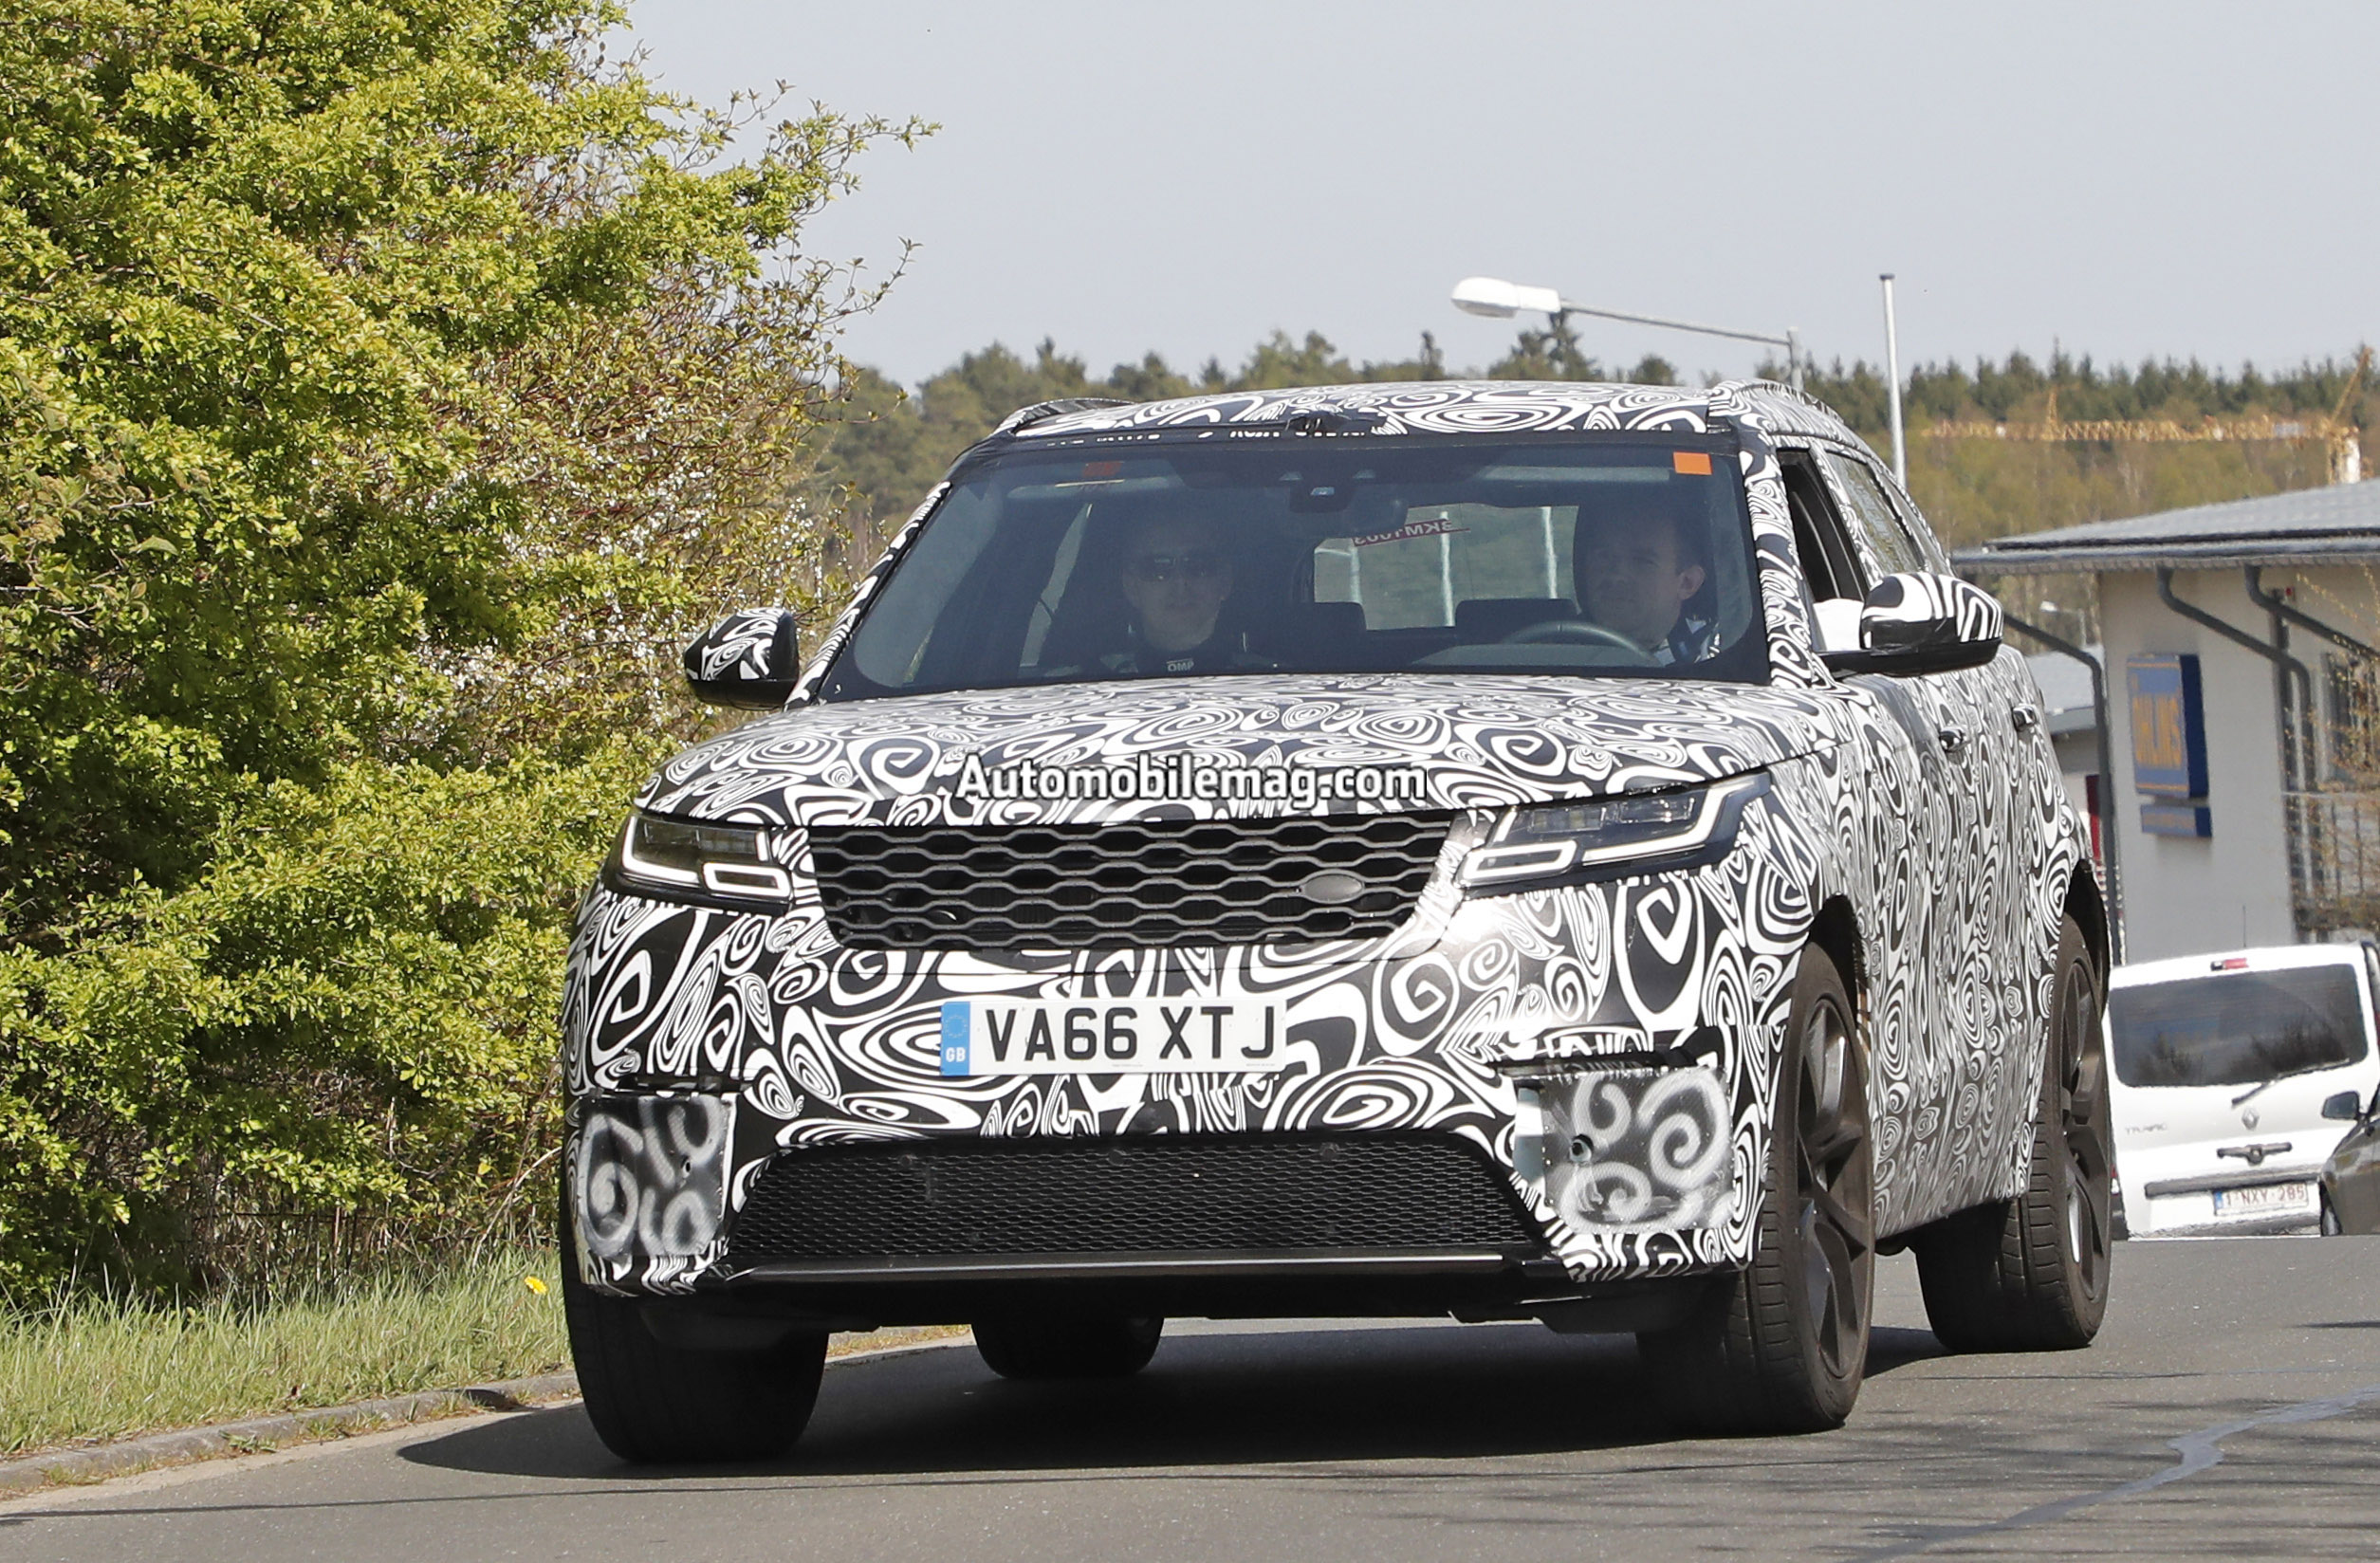 2018 Range Rover Velar SVR Spied at Nurburgring ...